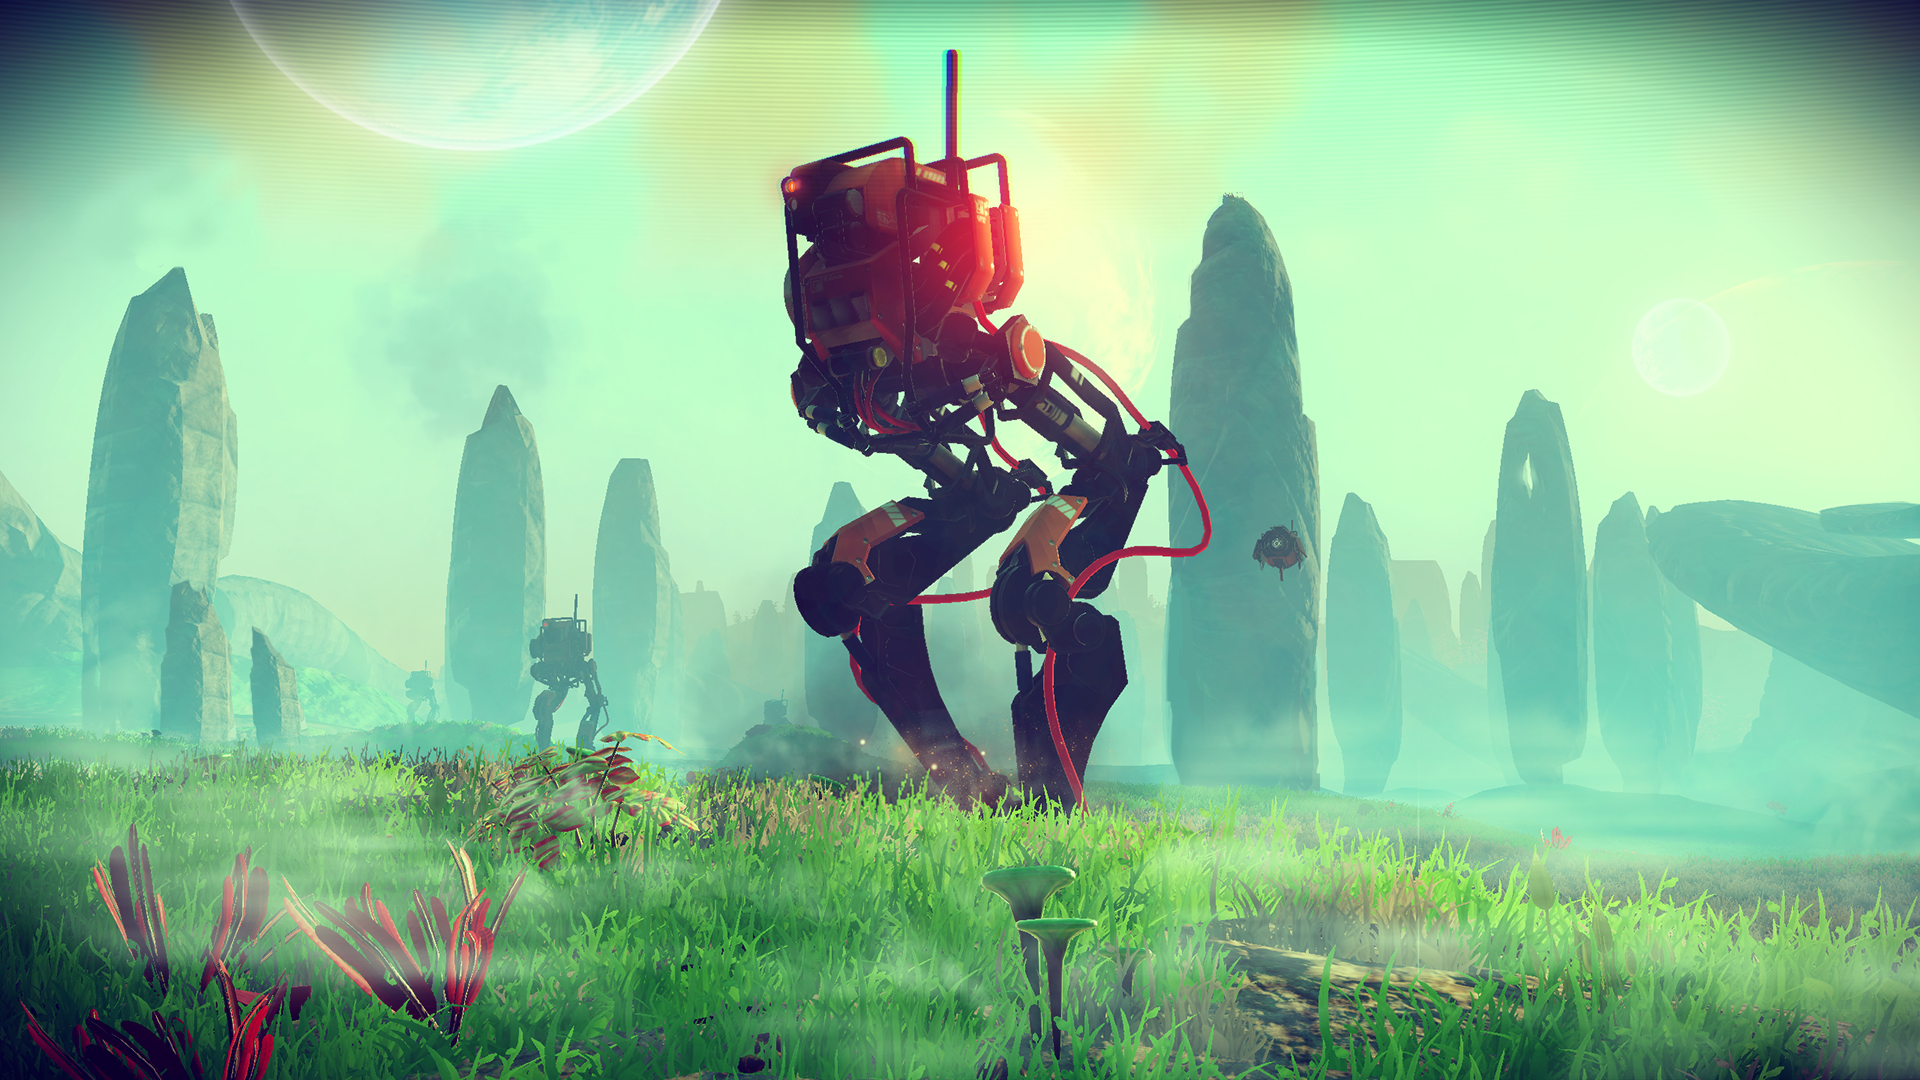 No Man's Sky – And I would warp 500 times